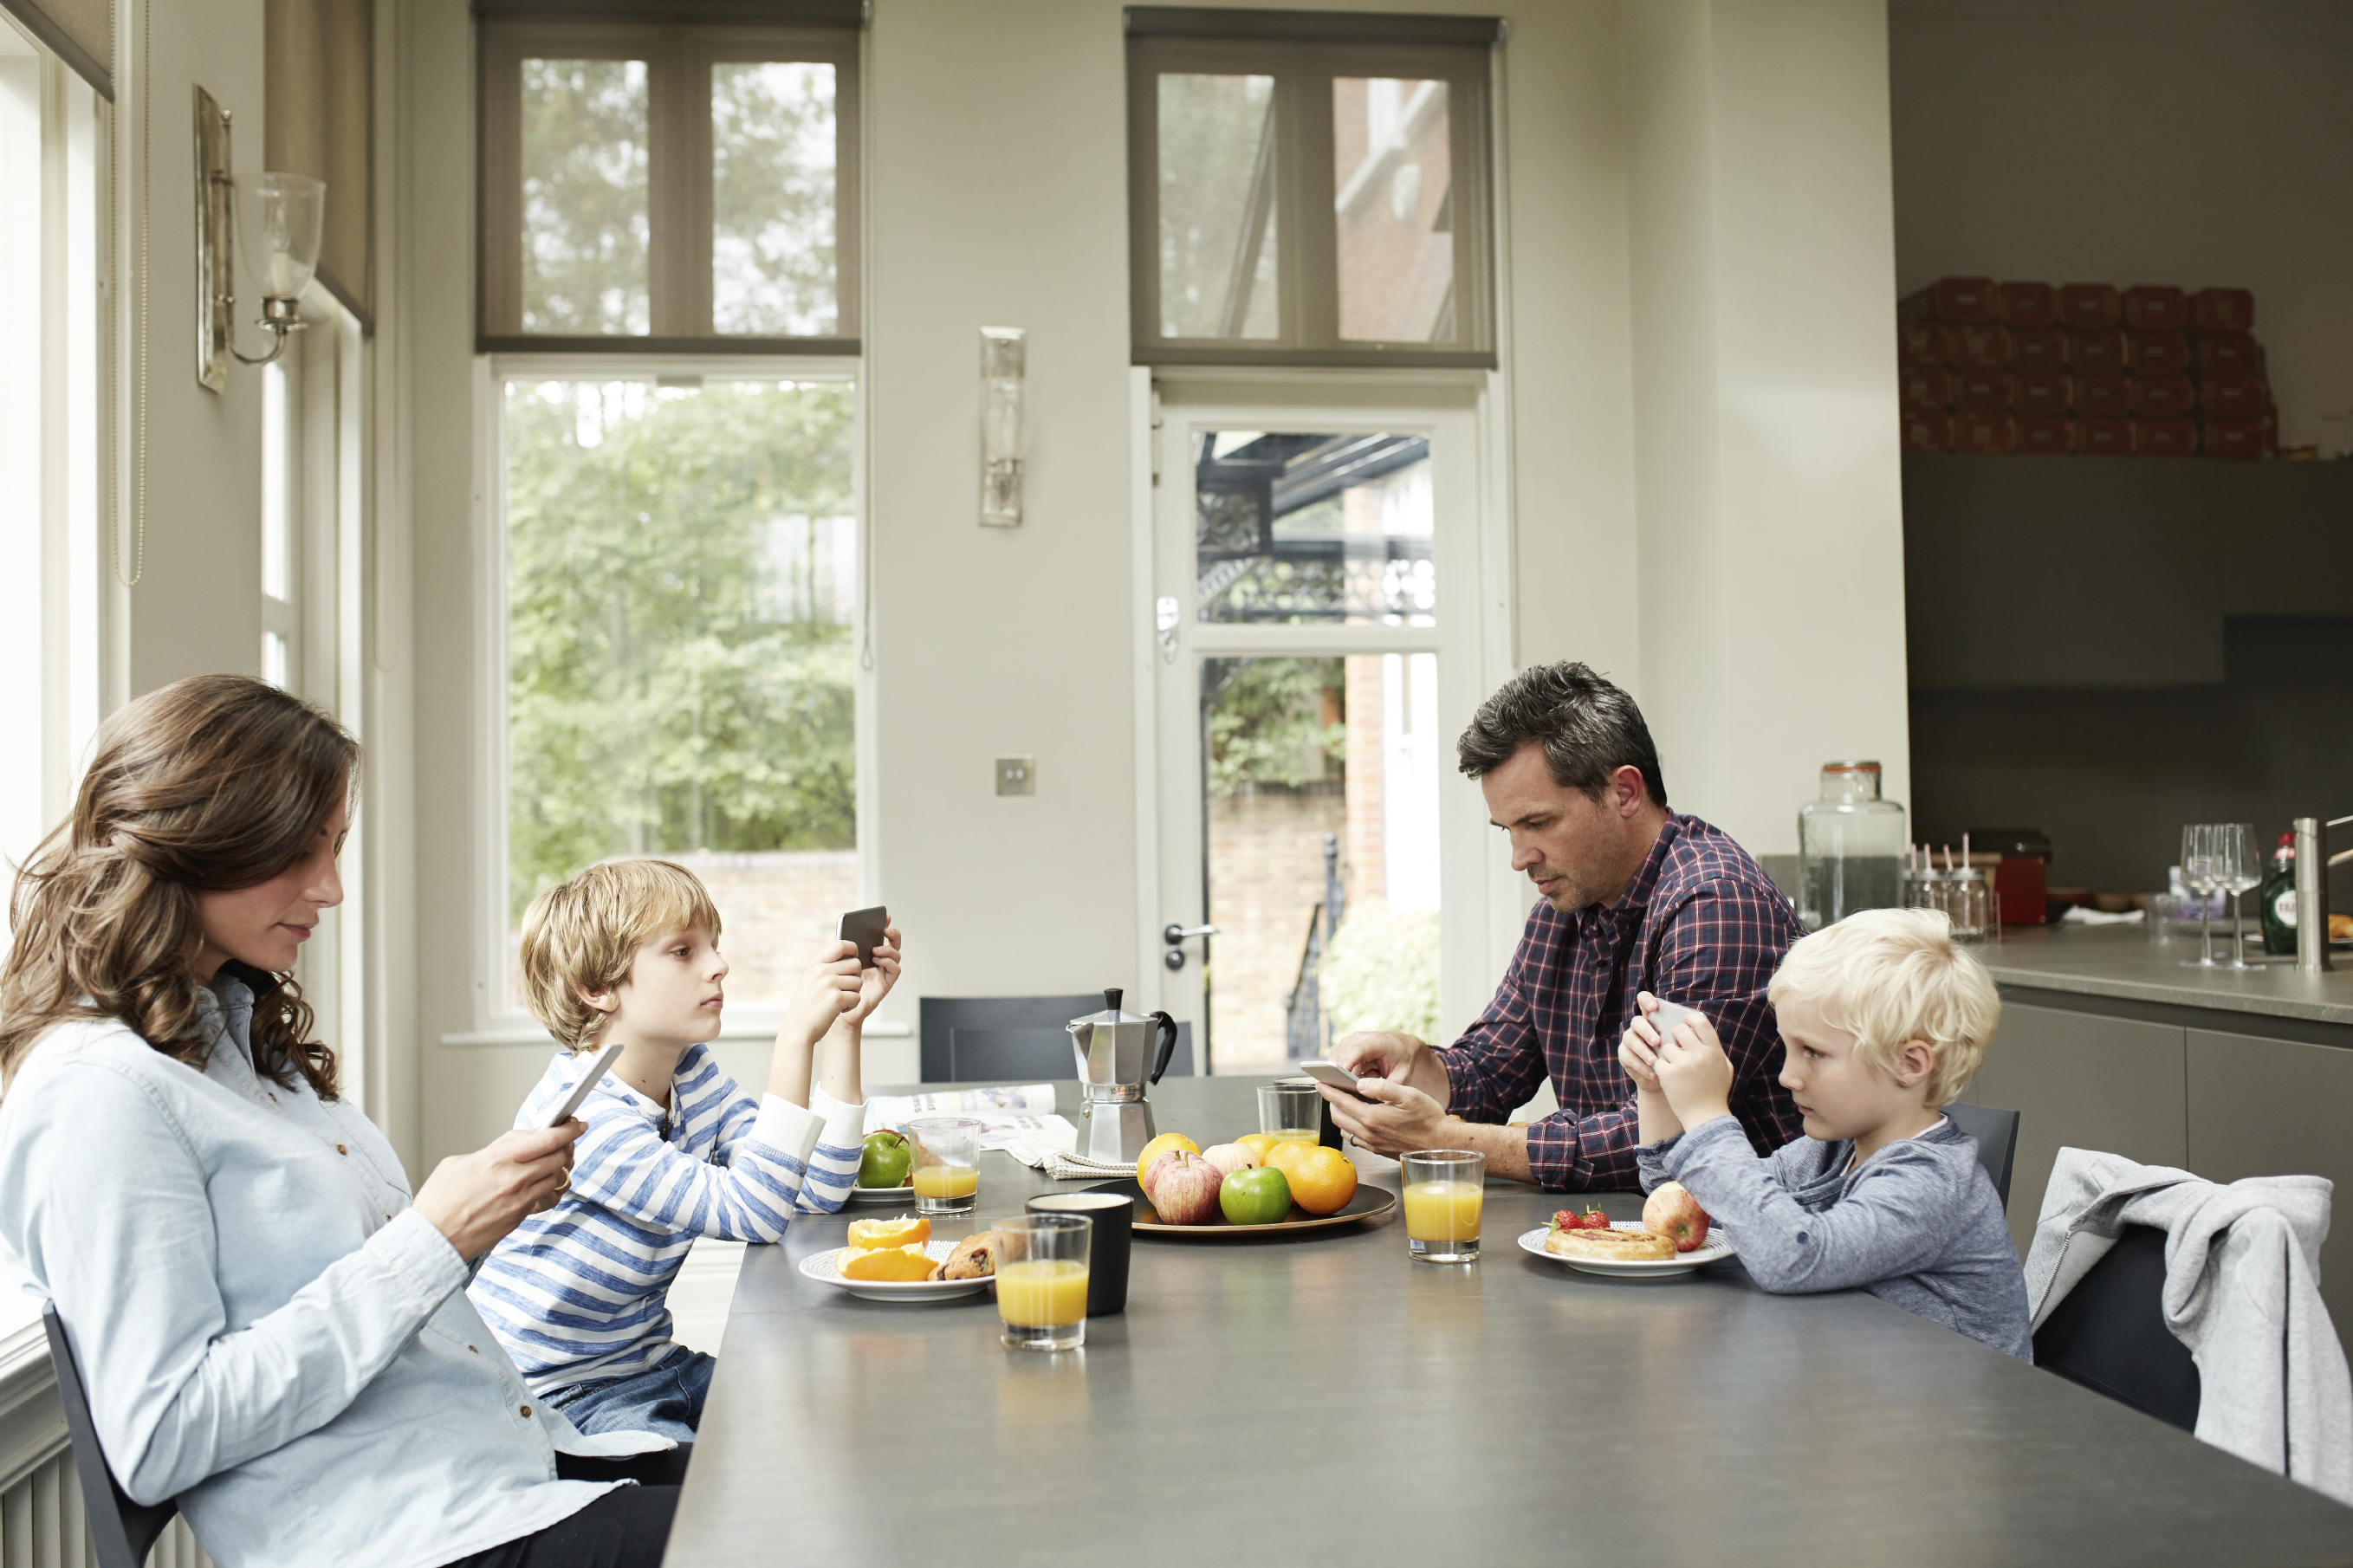 A family of four using cell phones at breakfast table. (stock image)